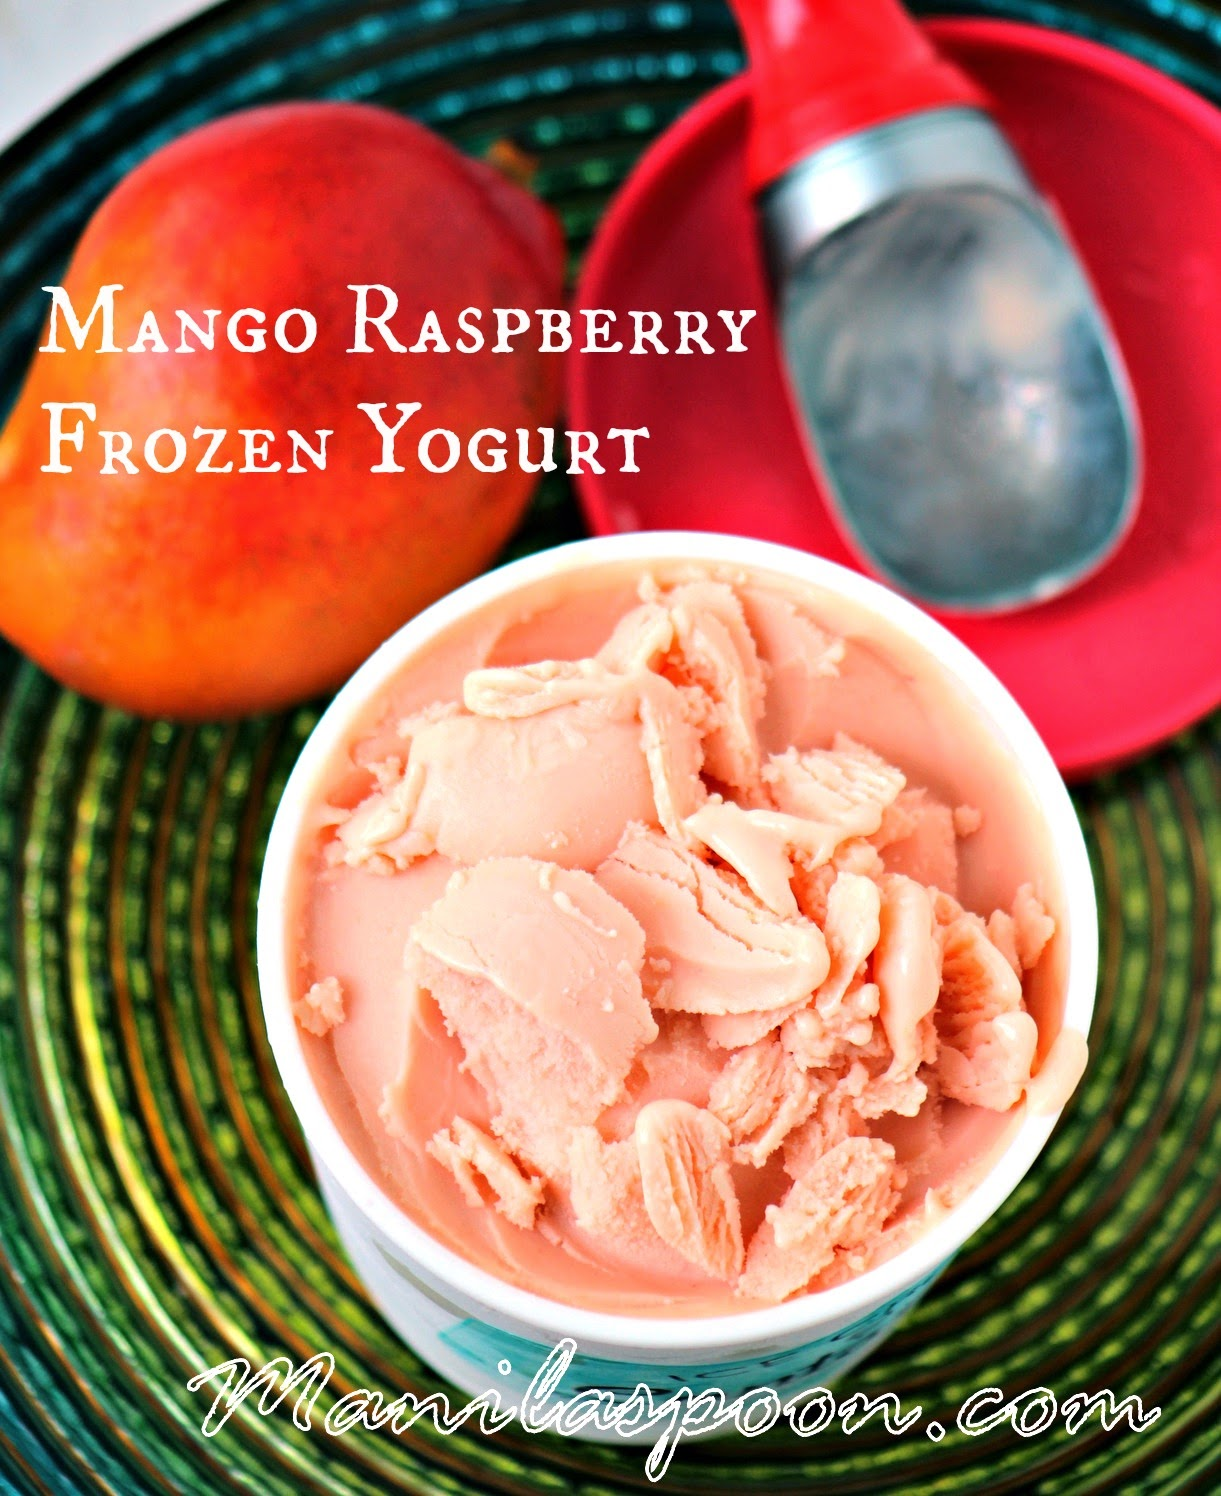 Mango Raspberry Frozen Yogurt